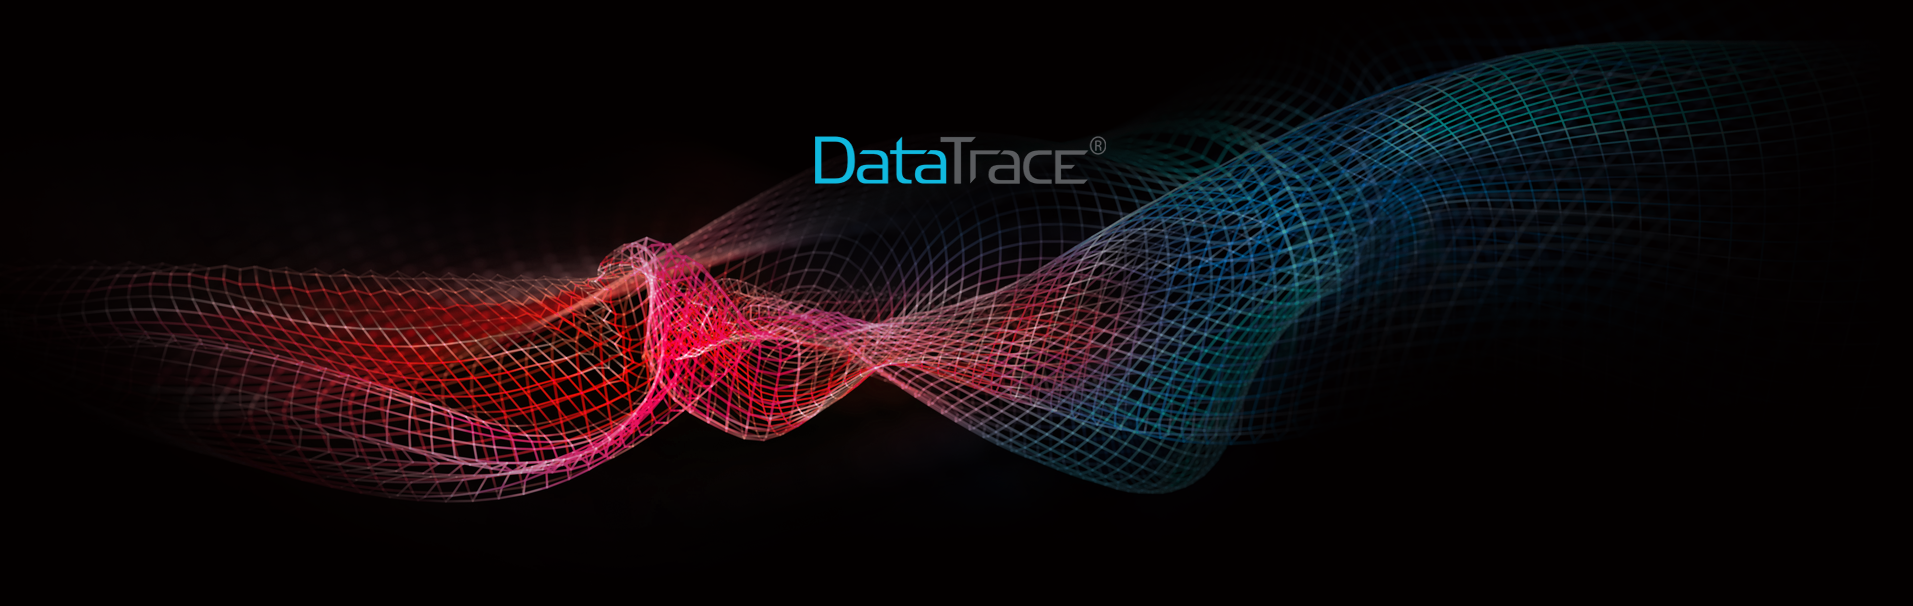 RedVision is now DataTrace